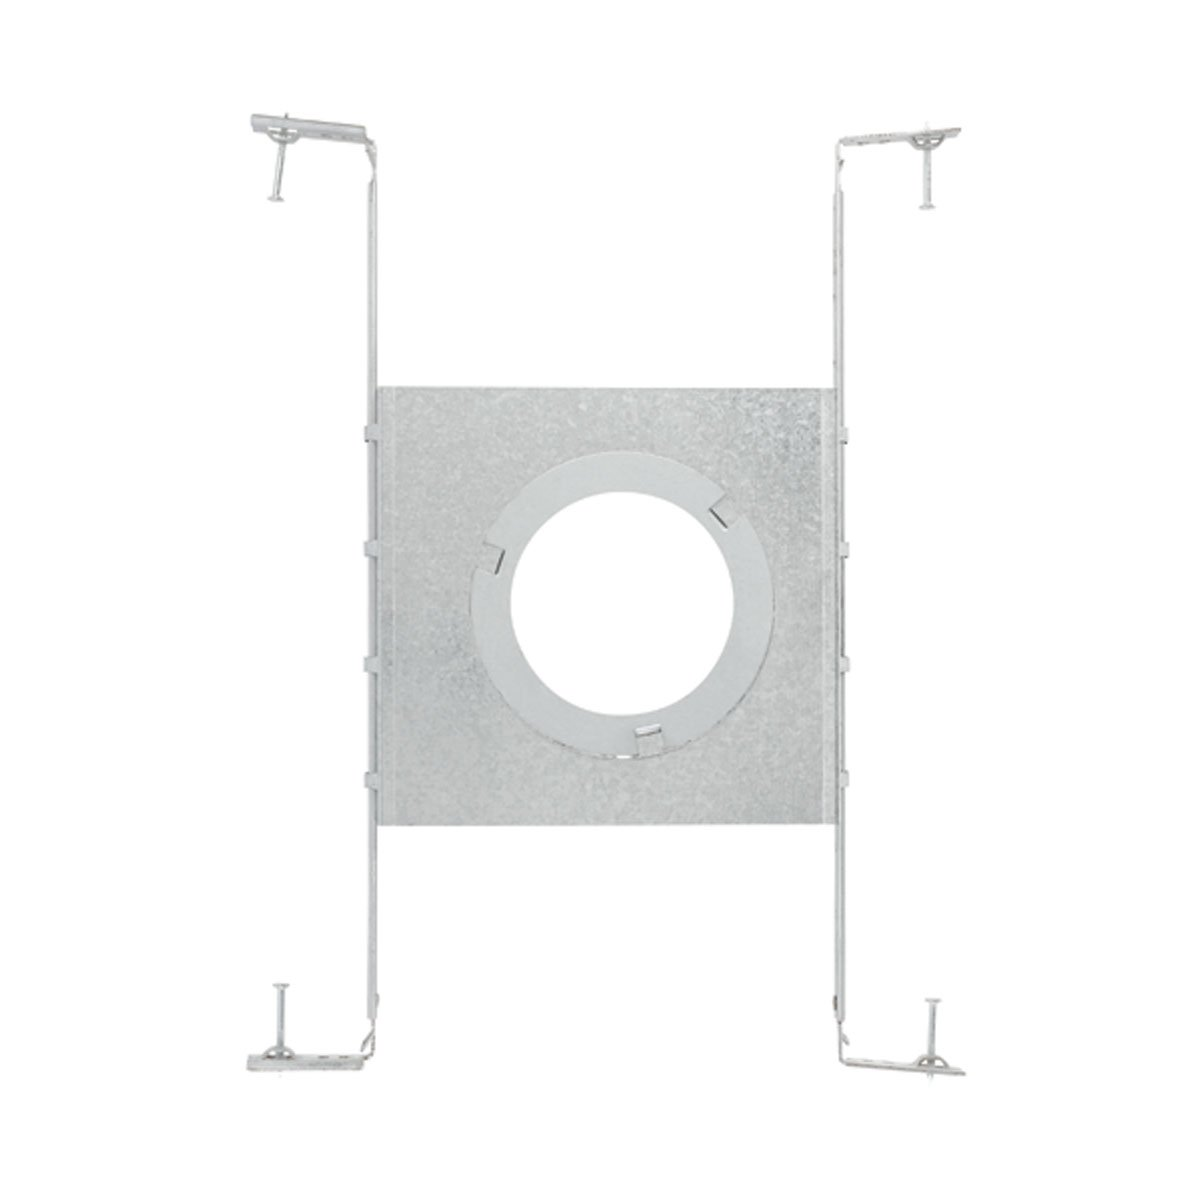 Globe ElectricGlobe Electric 9209901 3 Inch, 4-Inch and 5-Inch All-in-one New Construction Mounting Plate, Recessed Lighting Kit